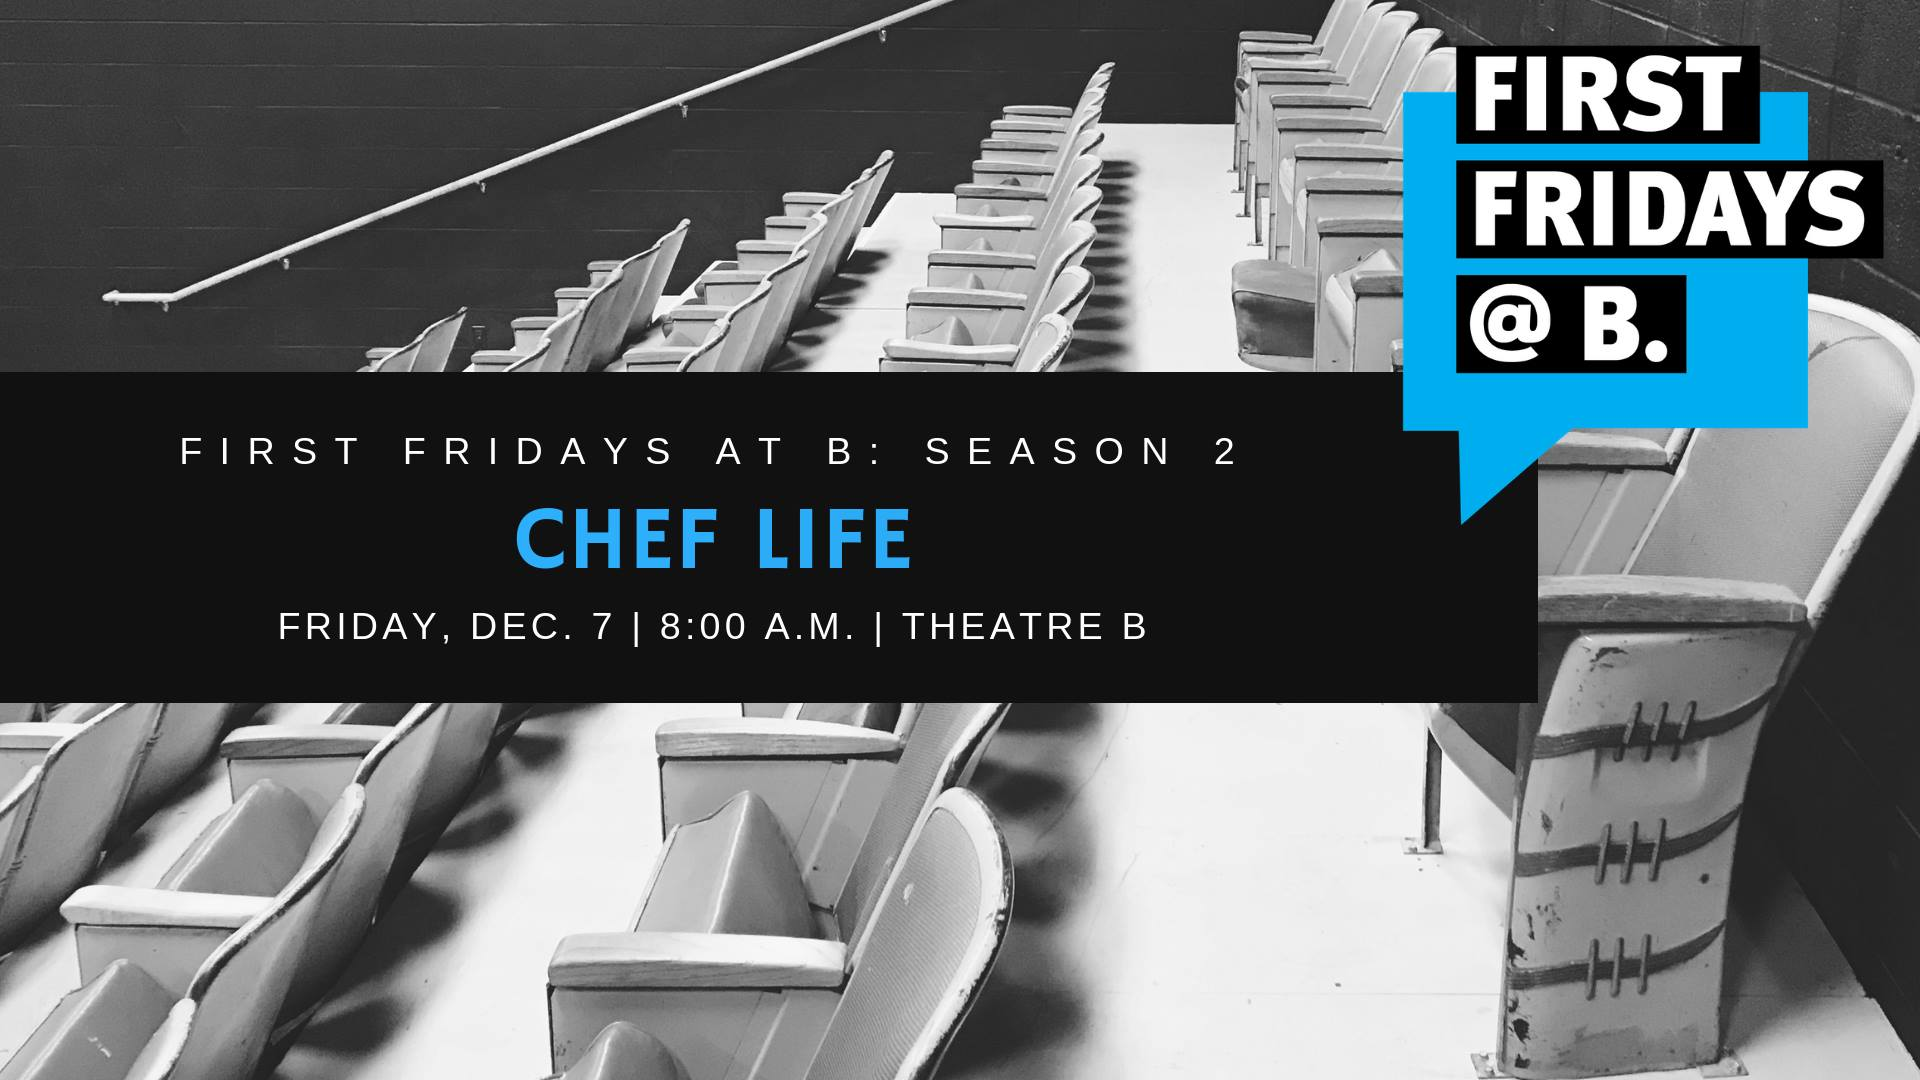 December 2018  - Our final First Fridays of the year  featured three local Fargo-Moorhead chefs: Andrea Baumgardner of BernBaum's, Patricia Hanson Vetter of Prairie St John's, and Travis Rosenbluth of Harvestable.    (Watch video)